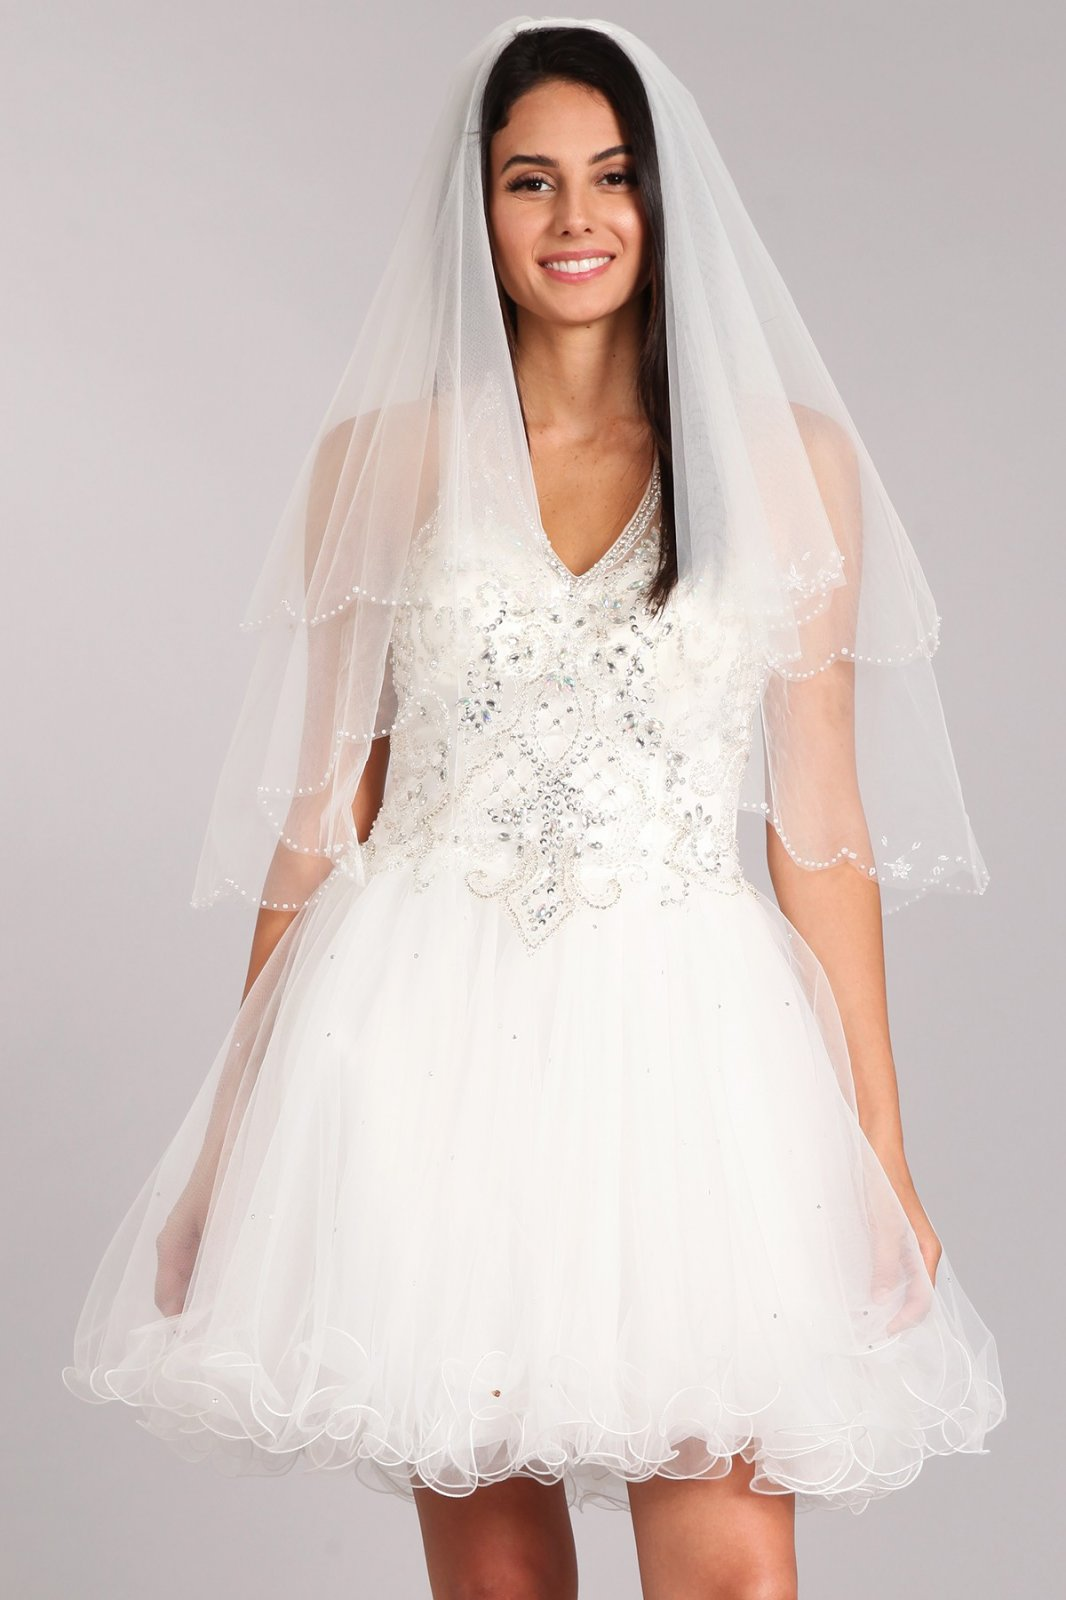 36 White lace veil with jeweled and beaded trim embellishments.